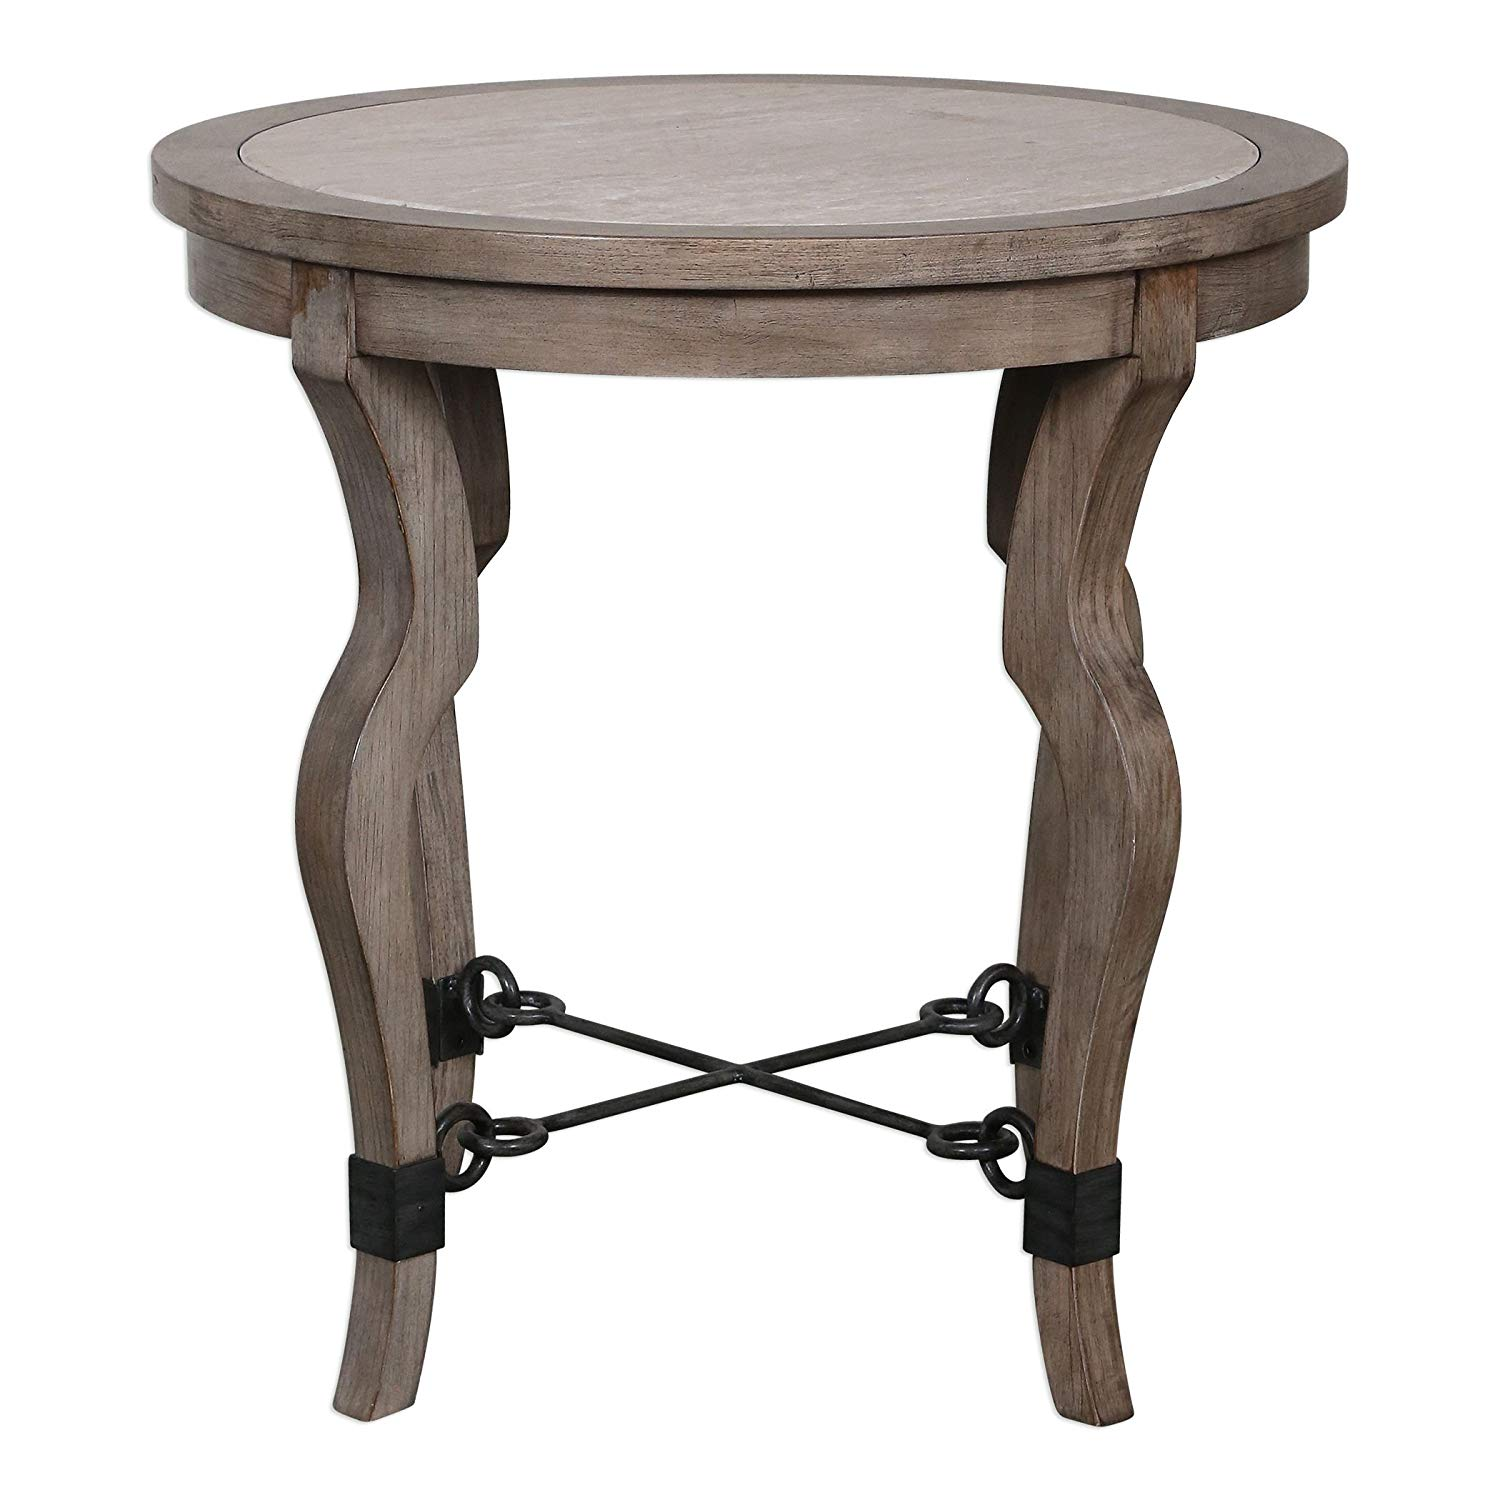 luxe curved weathered wood round accent table uttermost dice red travertine inlay light stone kitchen dining square plant stand wide nightstand deck coffee metal and glass nesting